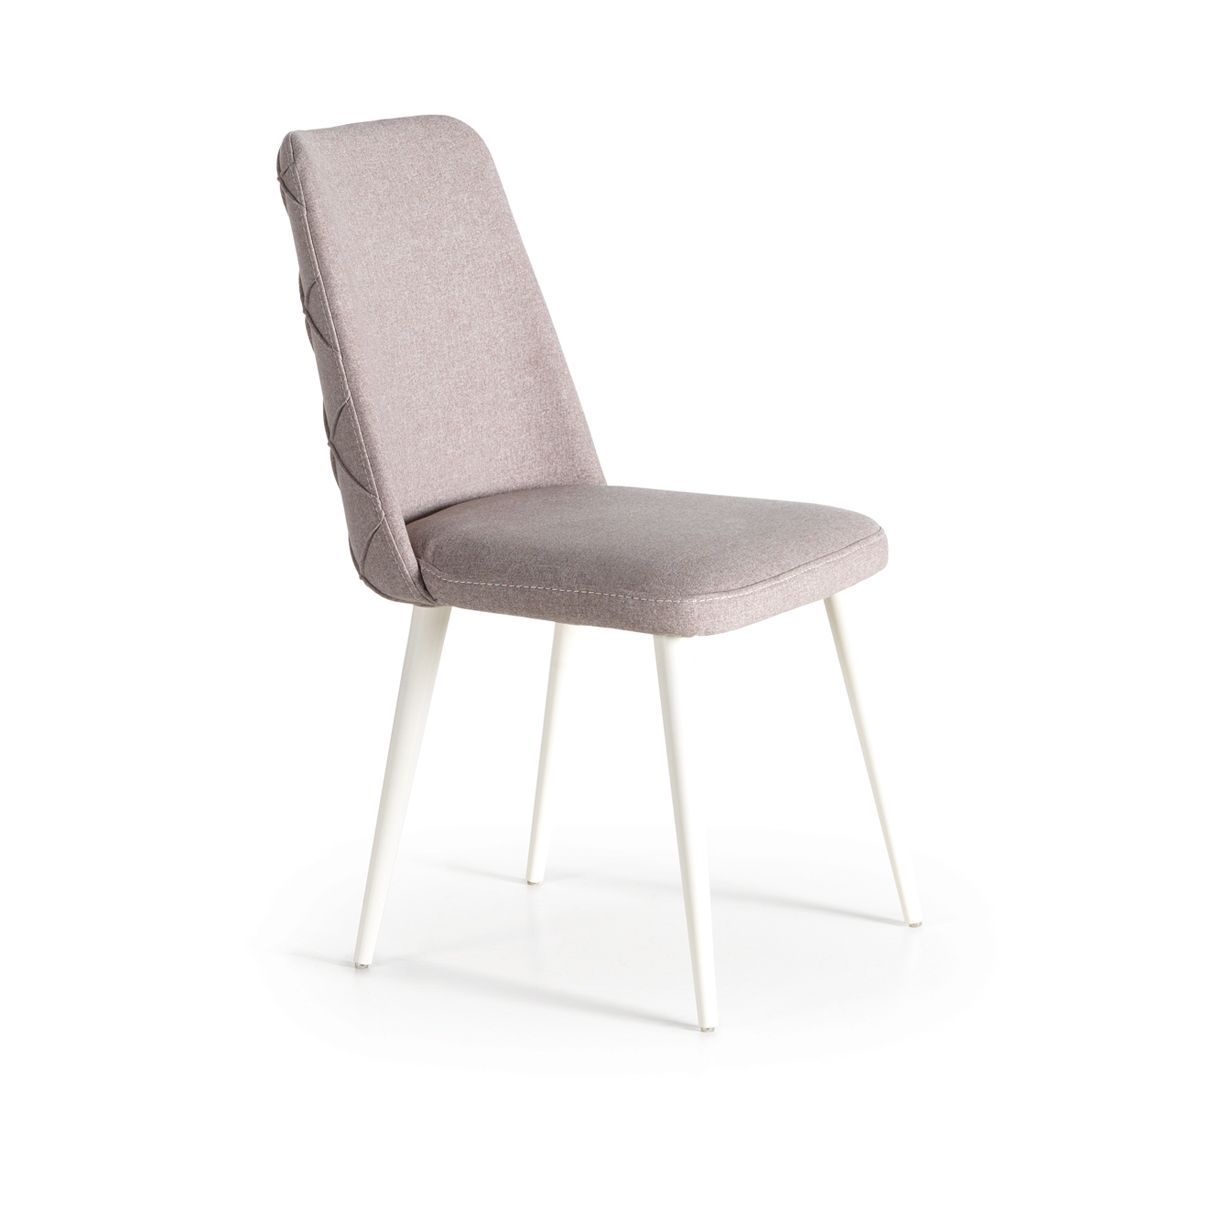 PERLA Chair